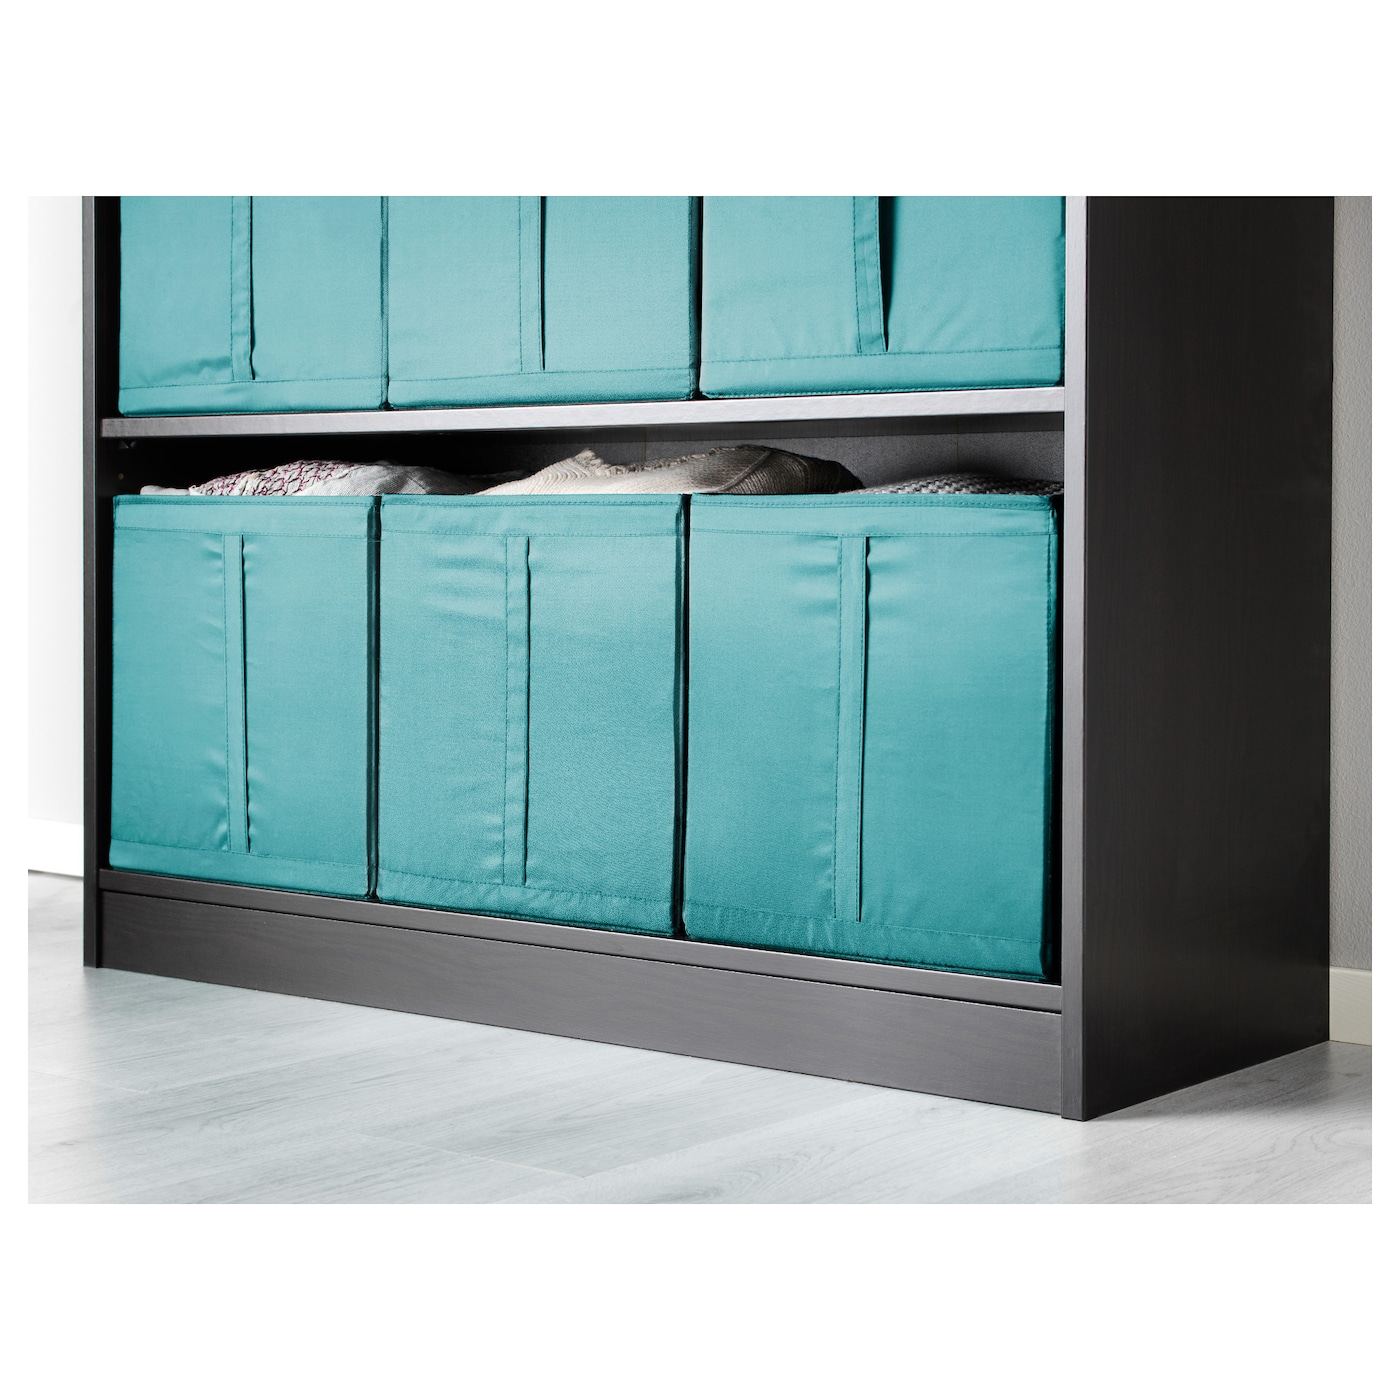 skubb rangement tissu bleu clair 31x34x33 cm ikea. Black Bedroom Furniture Sets. Home Design Ideas